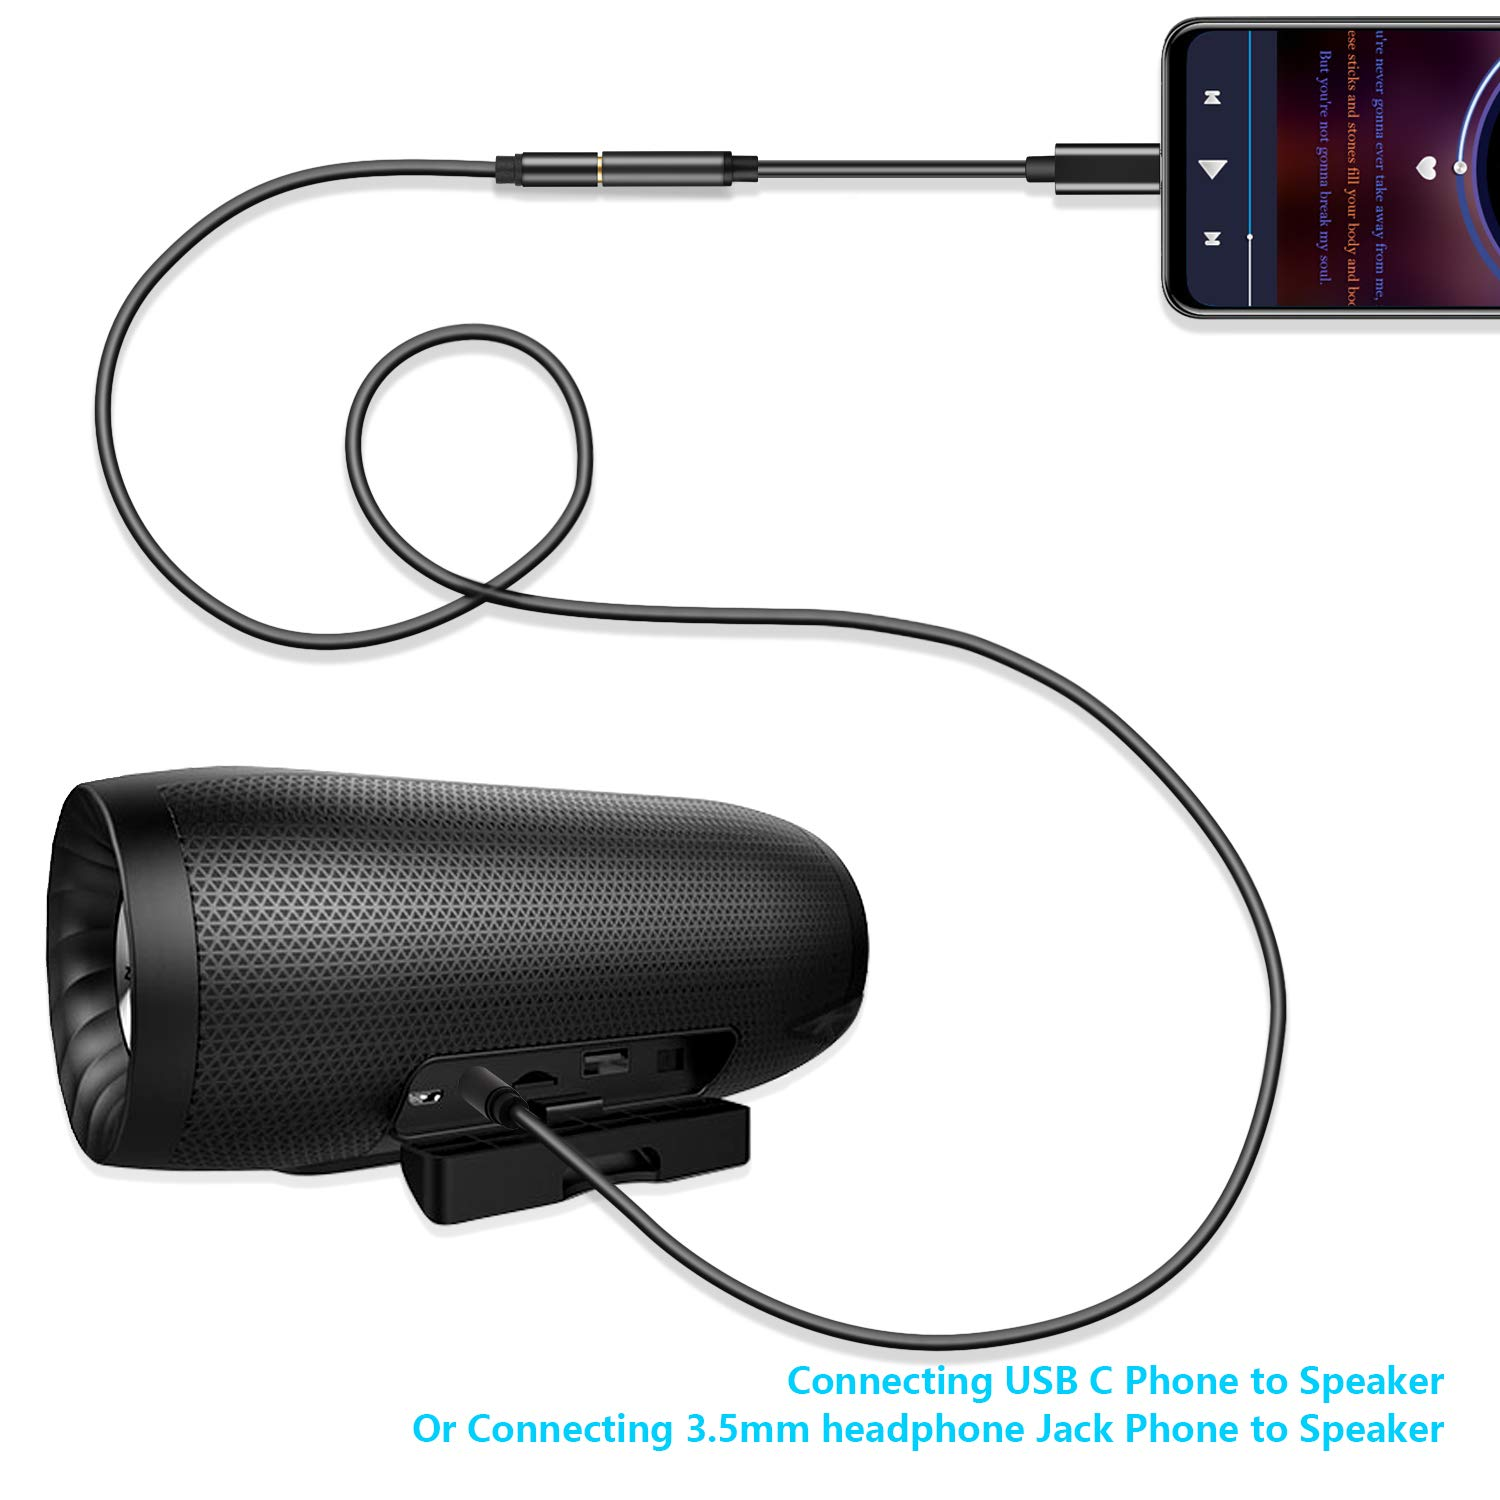 3-in-1 Type C to 3.5mm Audio Aux Jack Adapter, USB-C Male to 3.5mm Female Stereo Earphone Converter (Black)